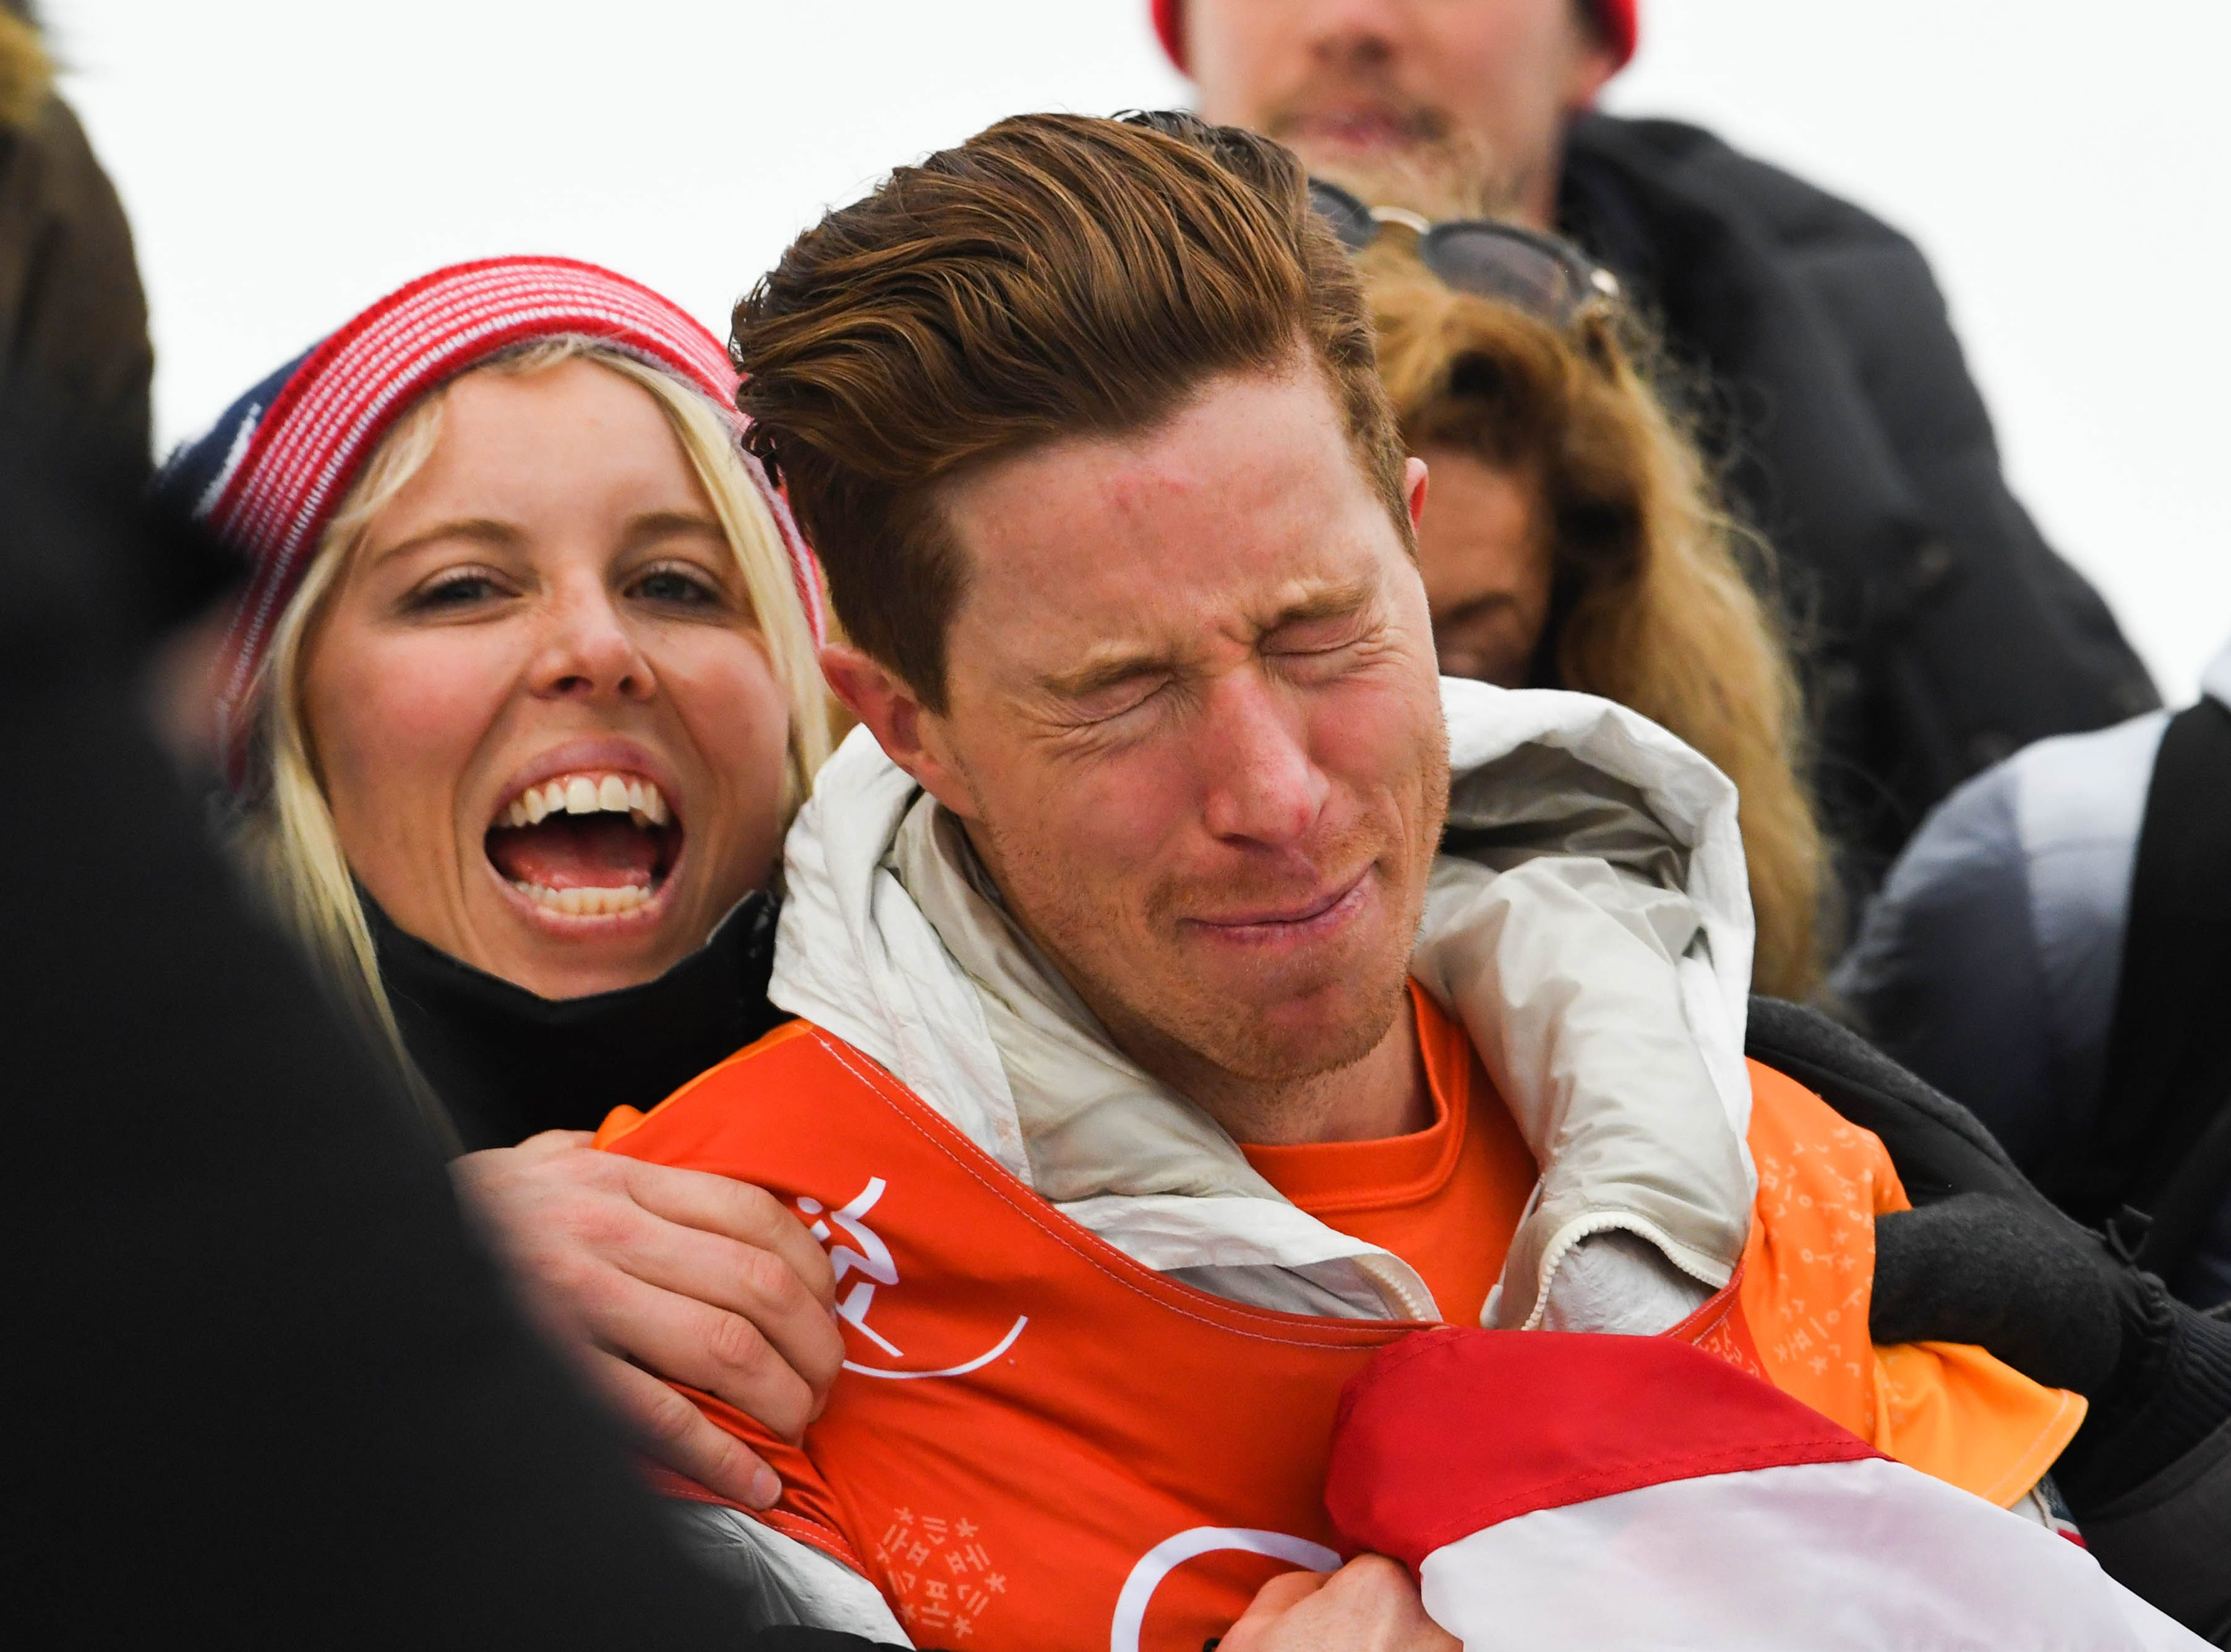 Feb. 14: Shaun White (USA) reacts after winning gold in men's snowboarding halfpipe during the Pyeongchang Winter Games.